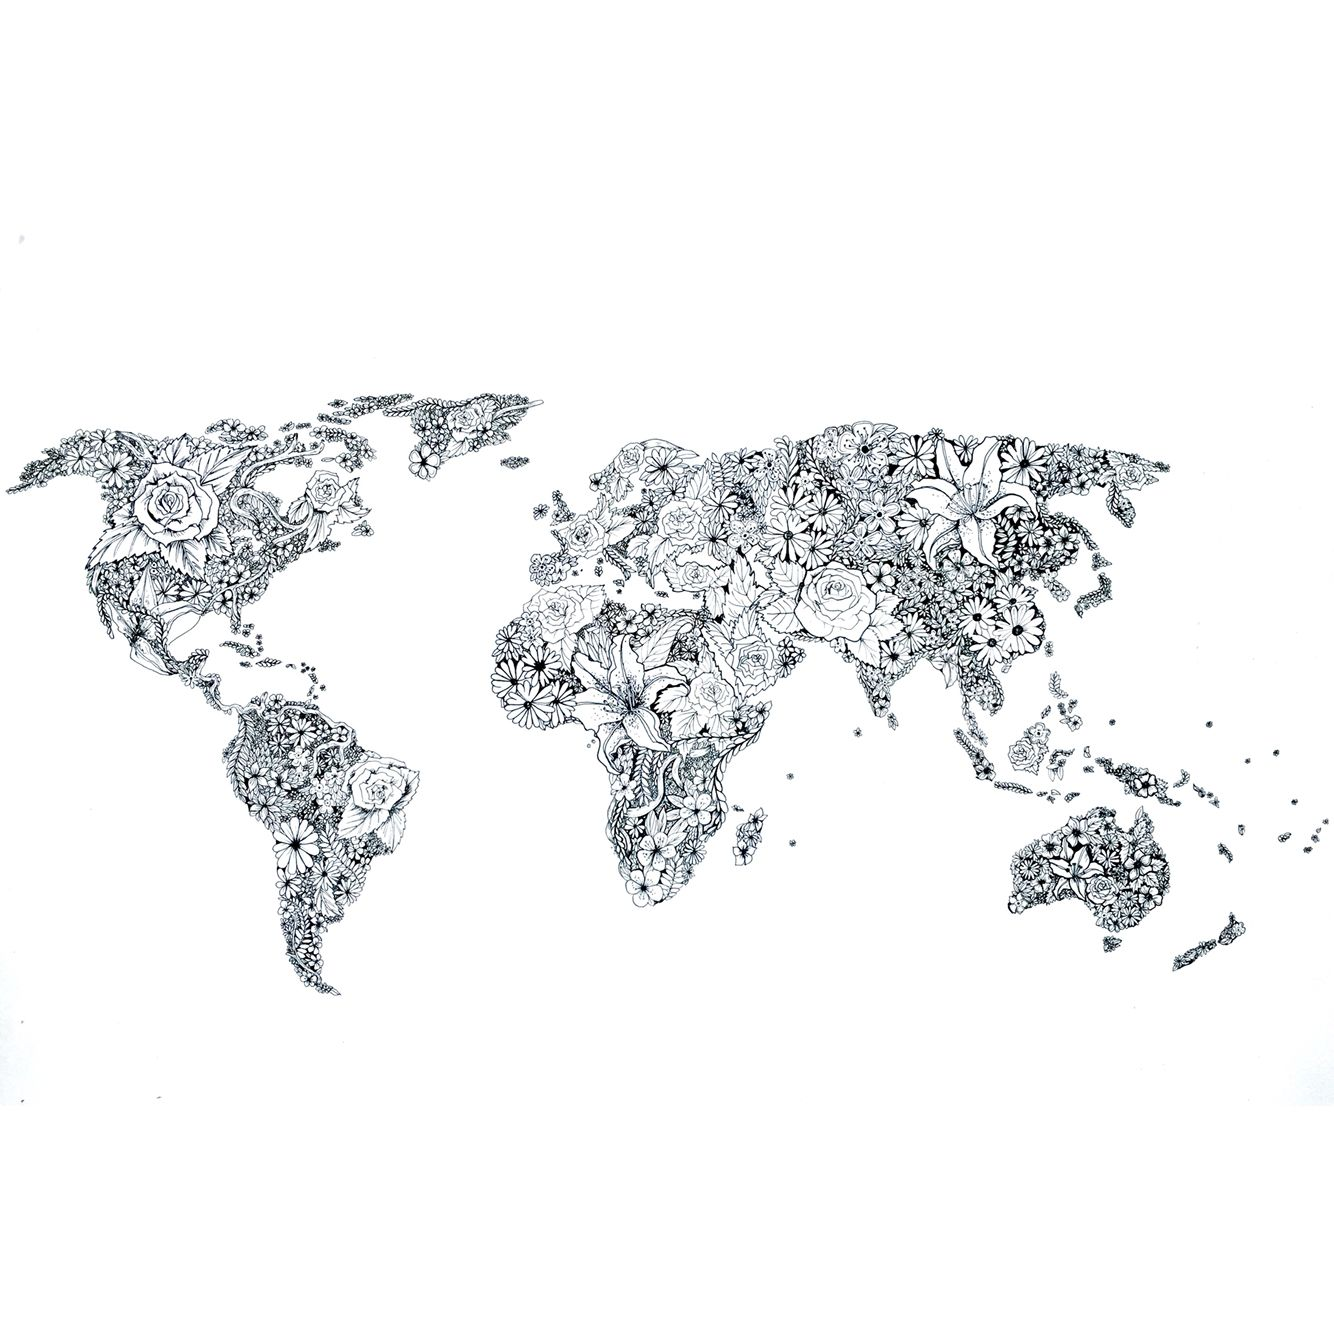 World Map Illustration by Artist Samii Lund! Floral influence, hand ...